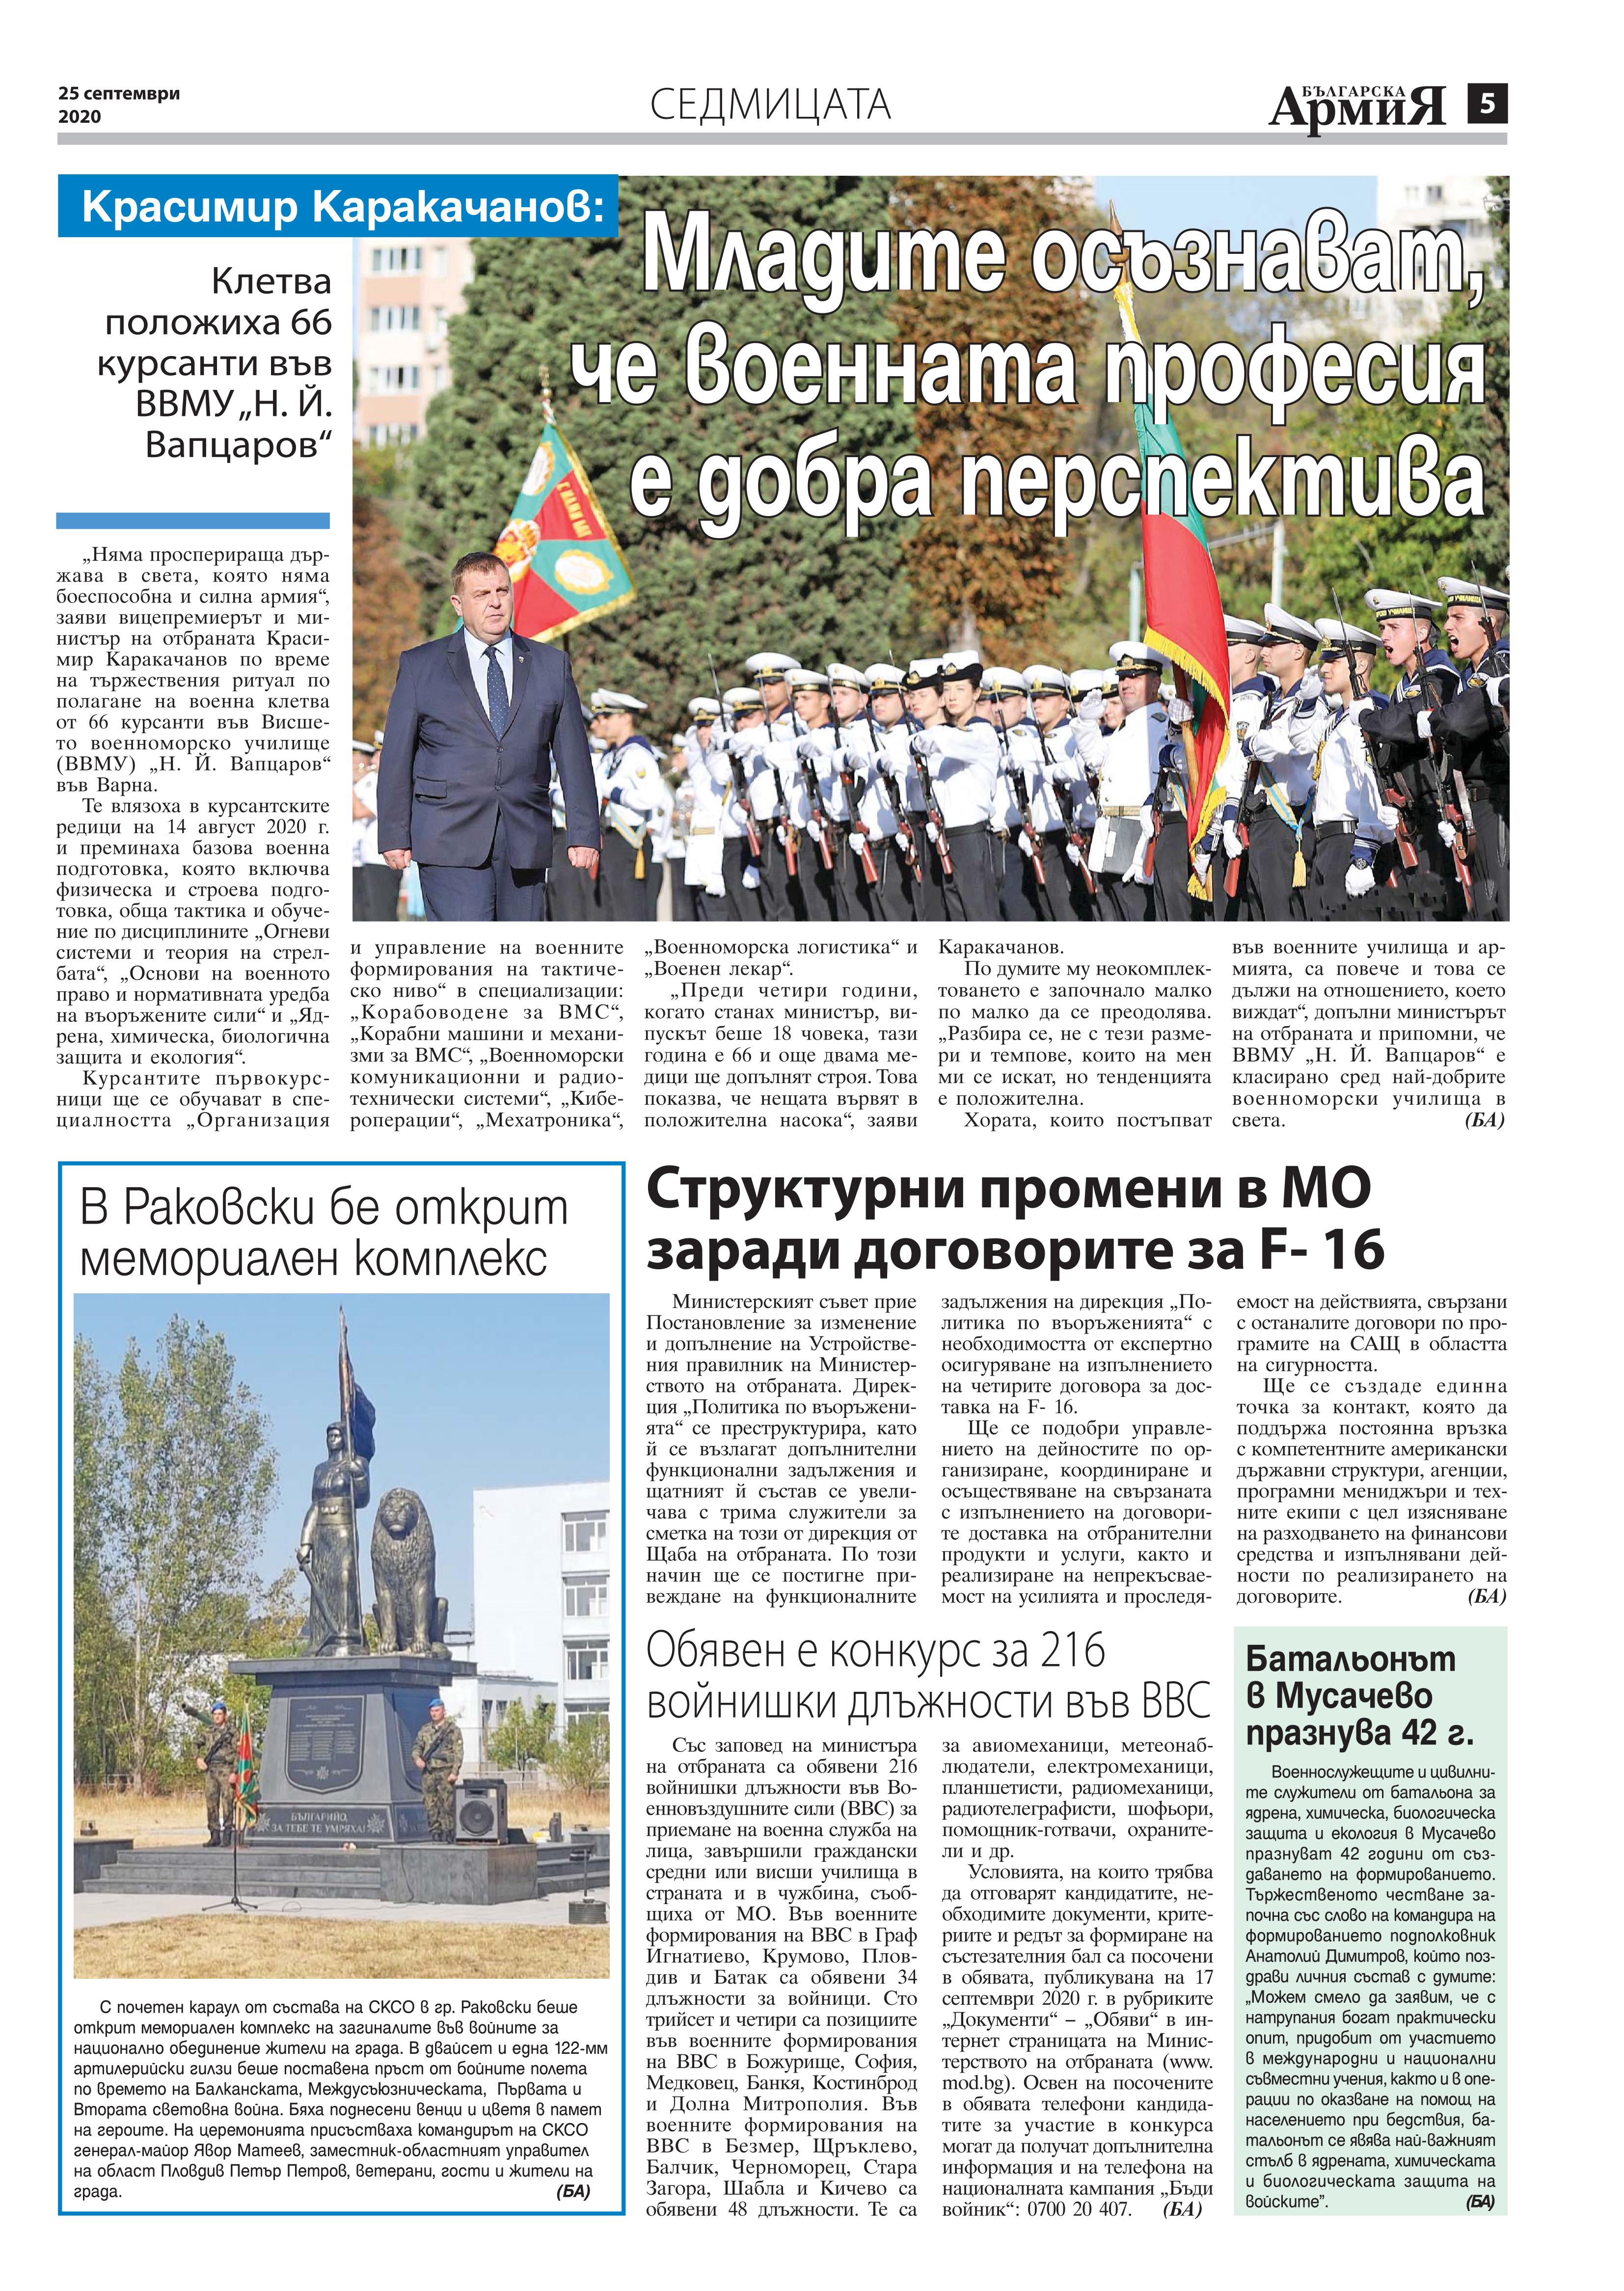 https://www.armymedia.bg/wp-content/uploads/2015/06/05.page1_-148.jpg